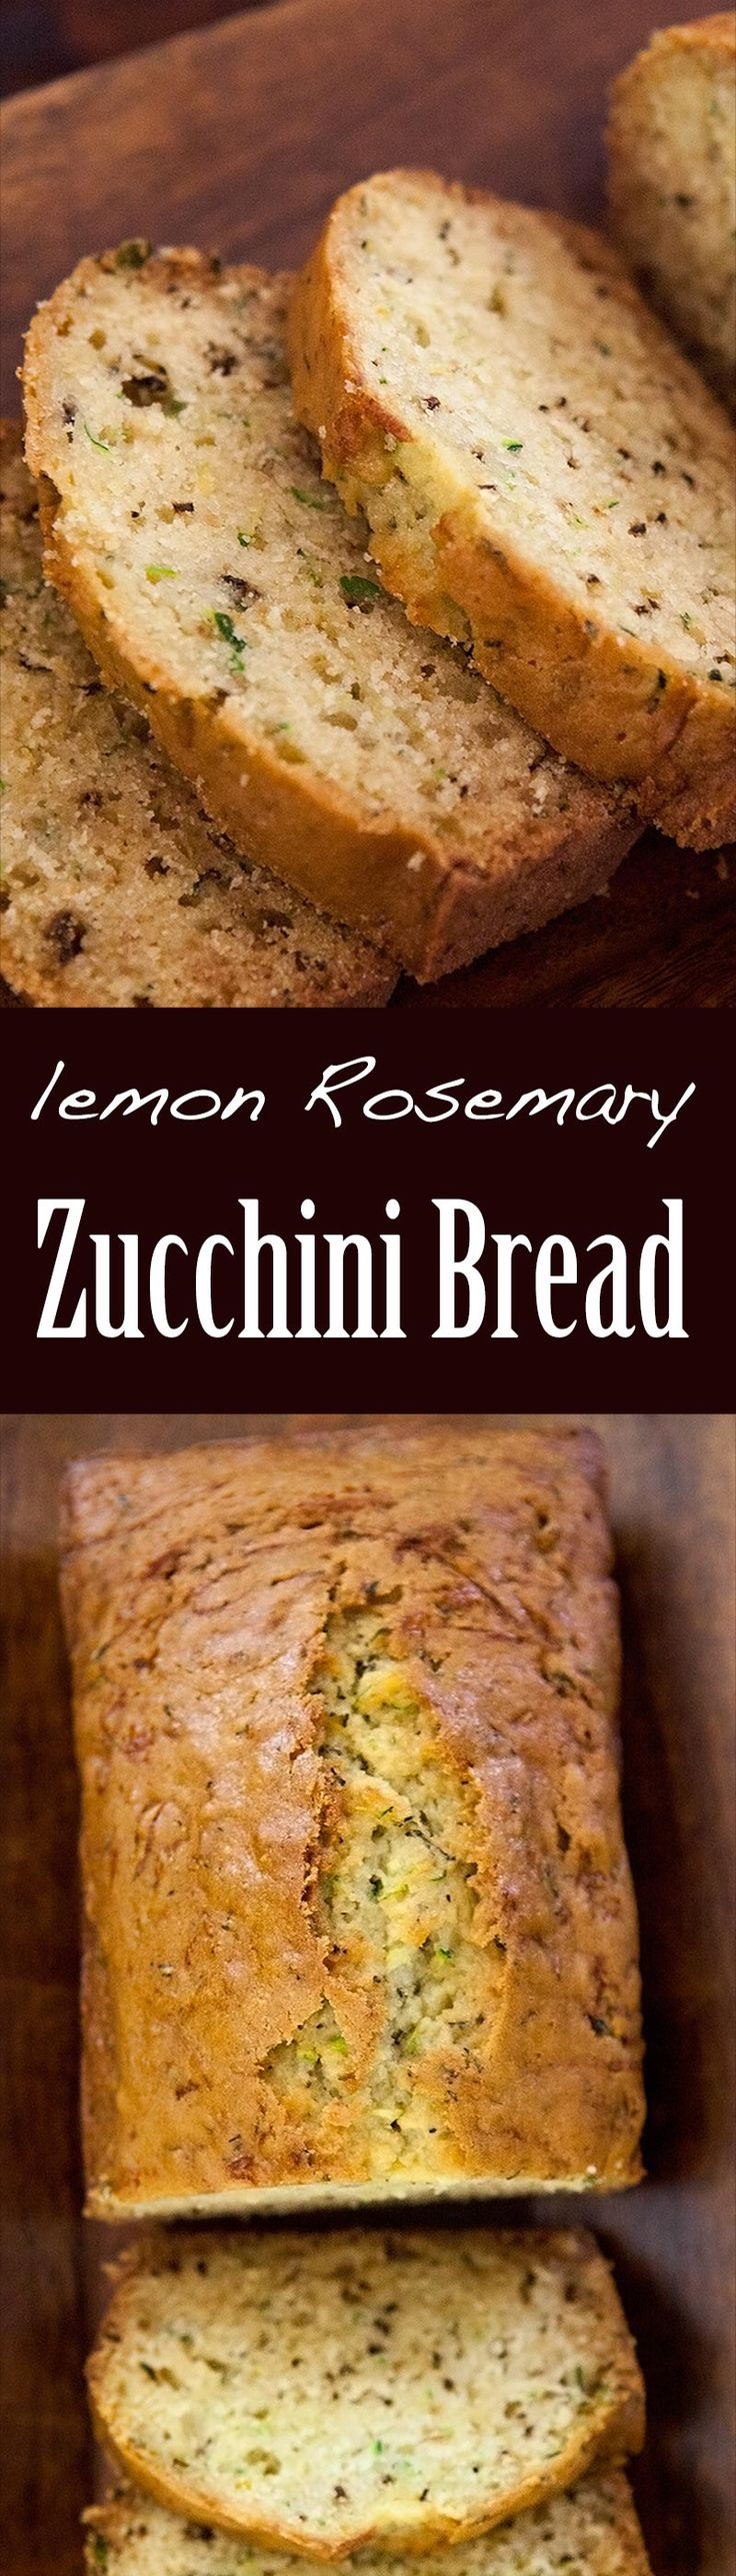 Lemon Rosemary Zucchini Bread | Recipe | Zucchini, Breads and Lemon